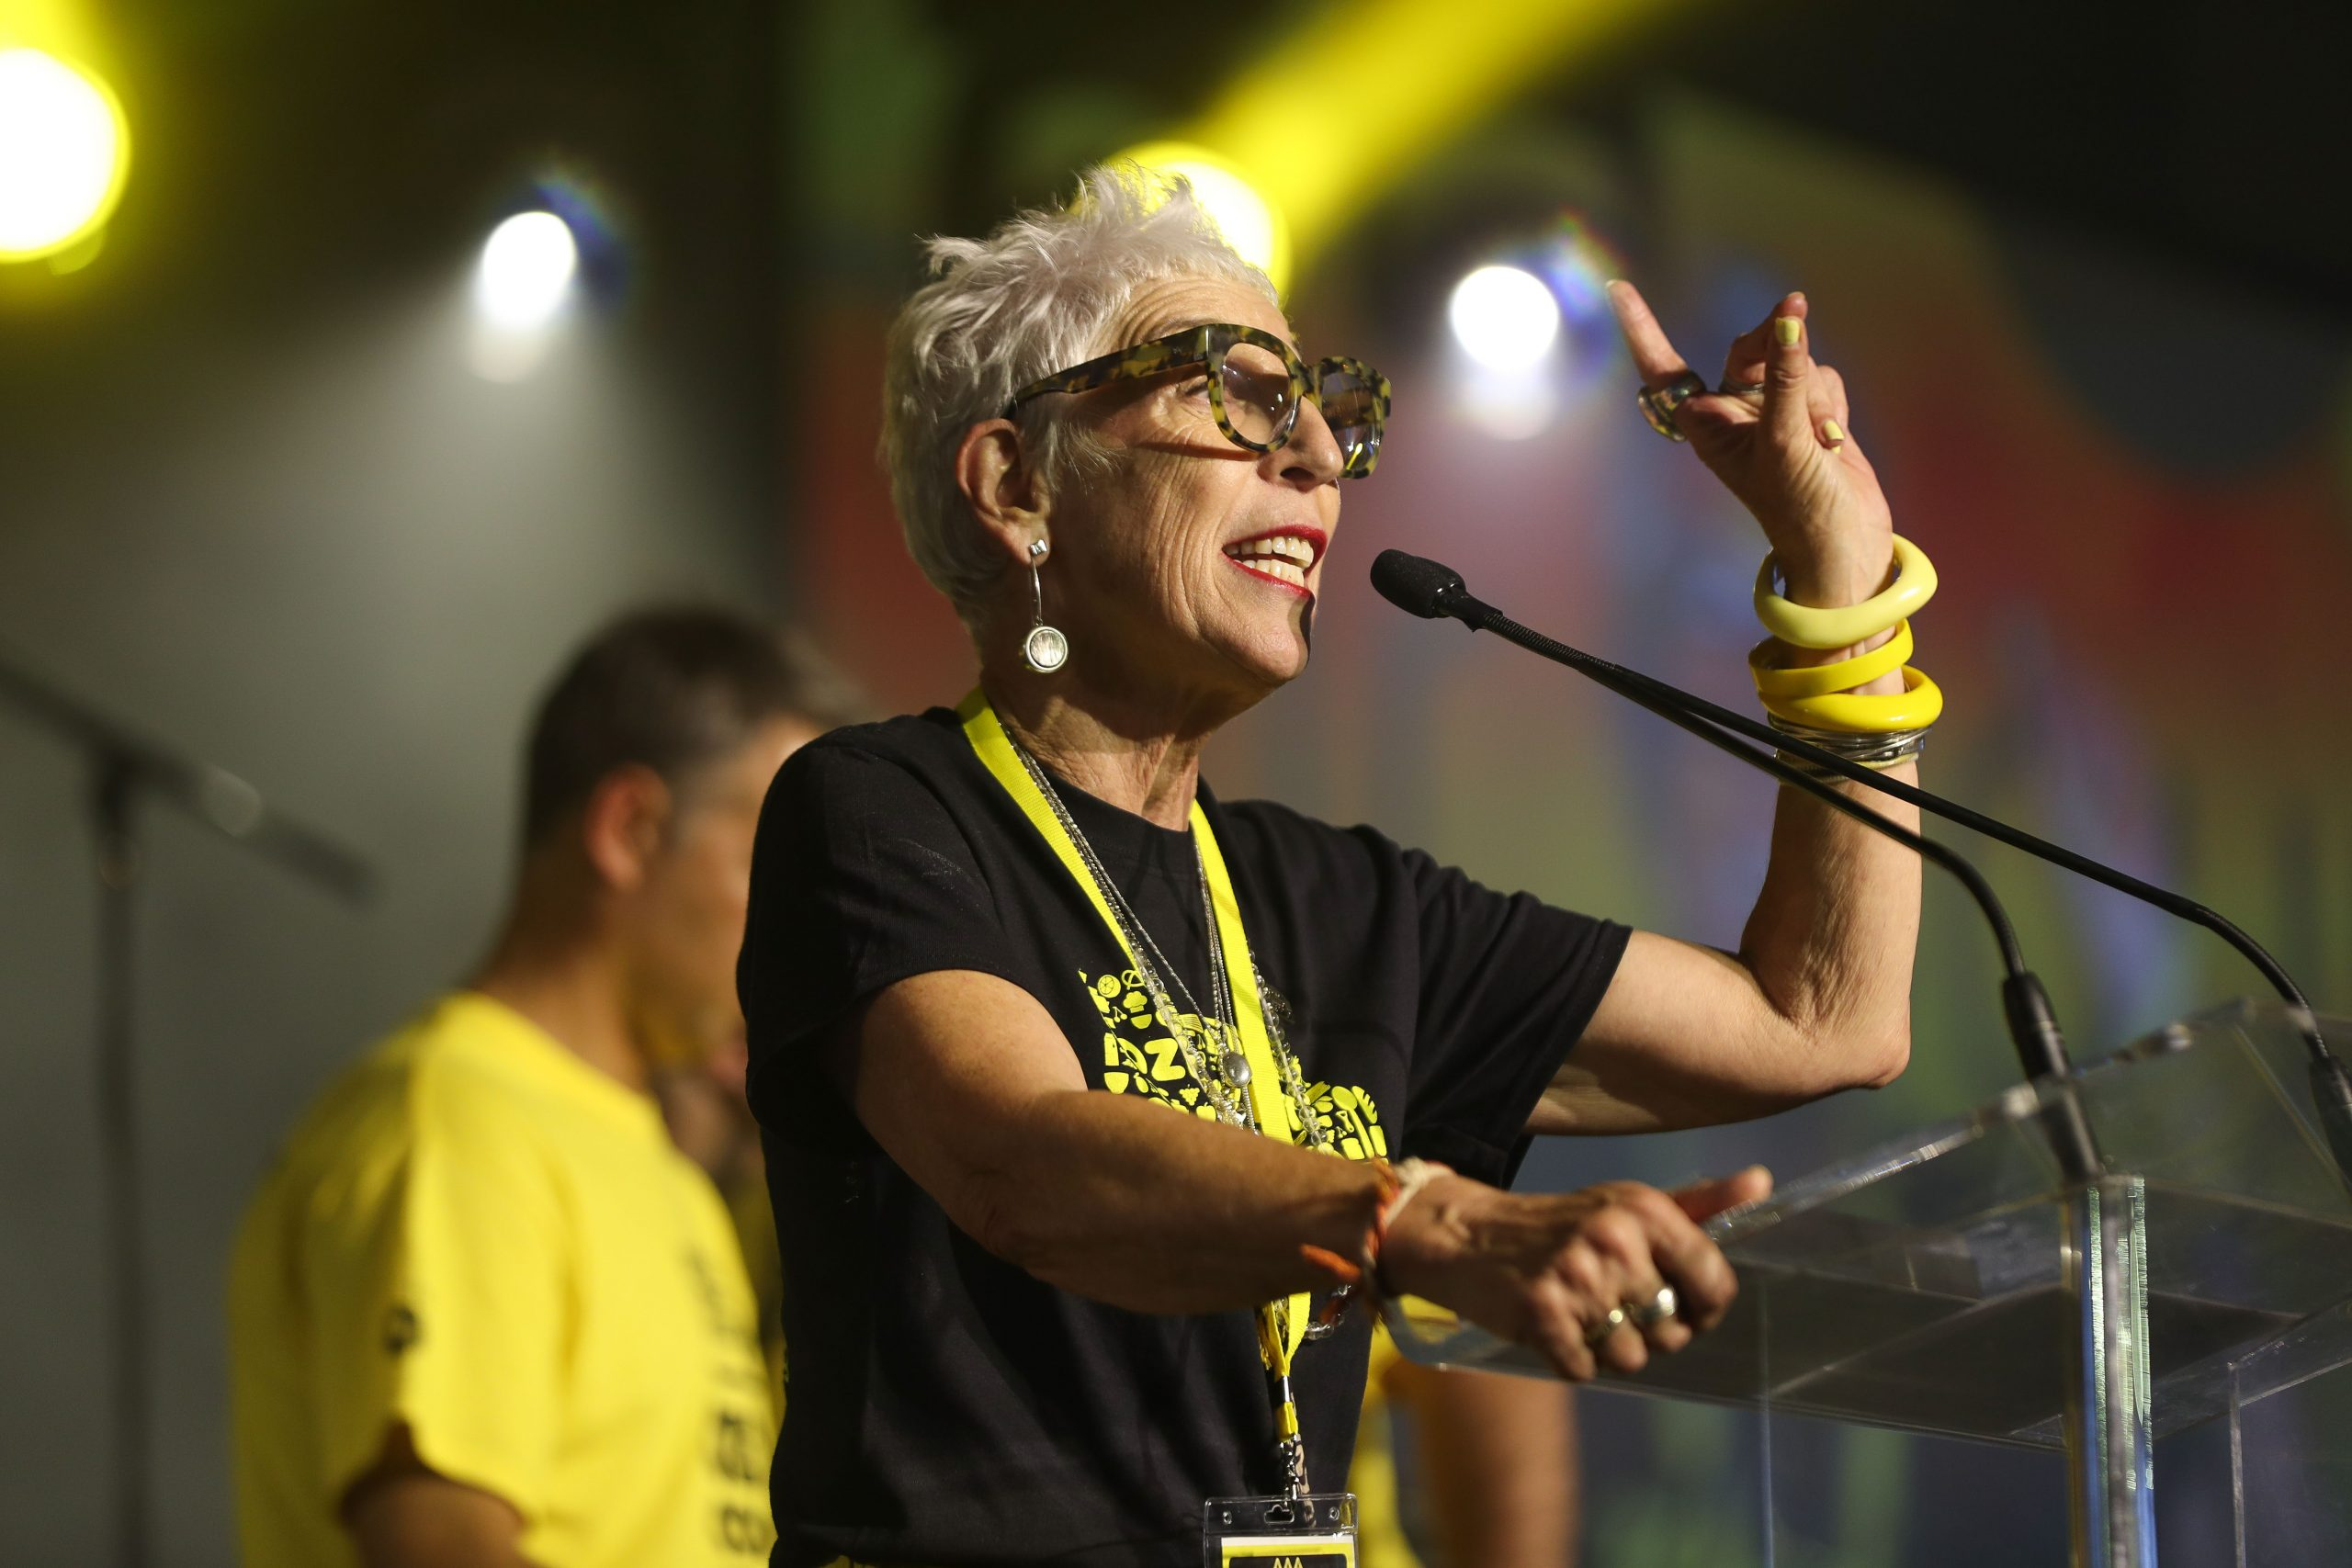 Ozharvest-ceo-cookoff-2018_getty-images_ronni-kahn-speech-scaled